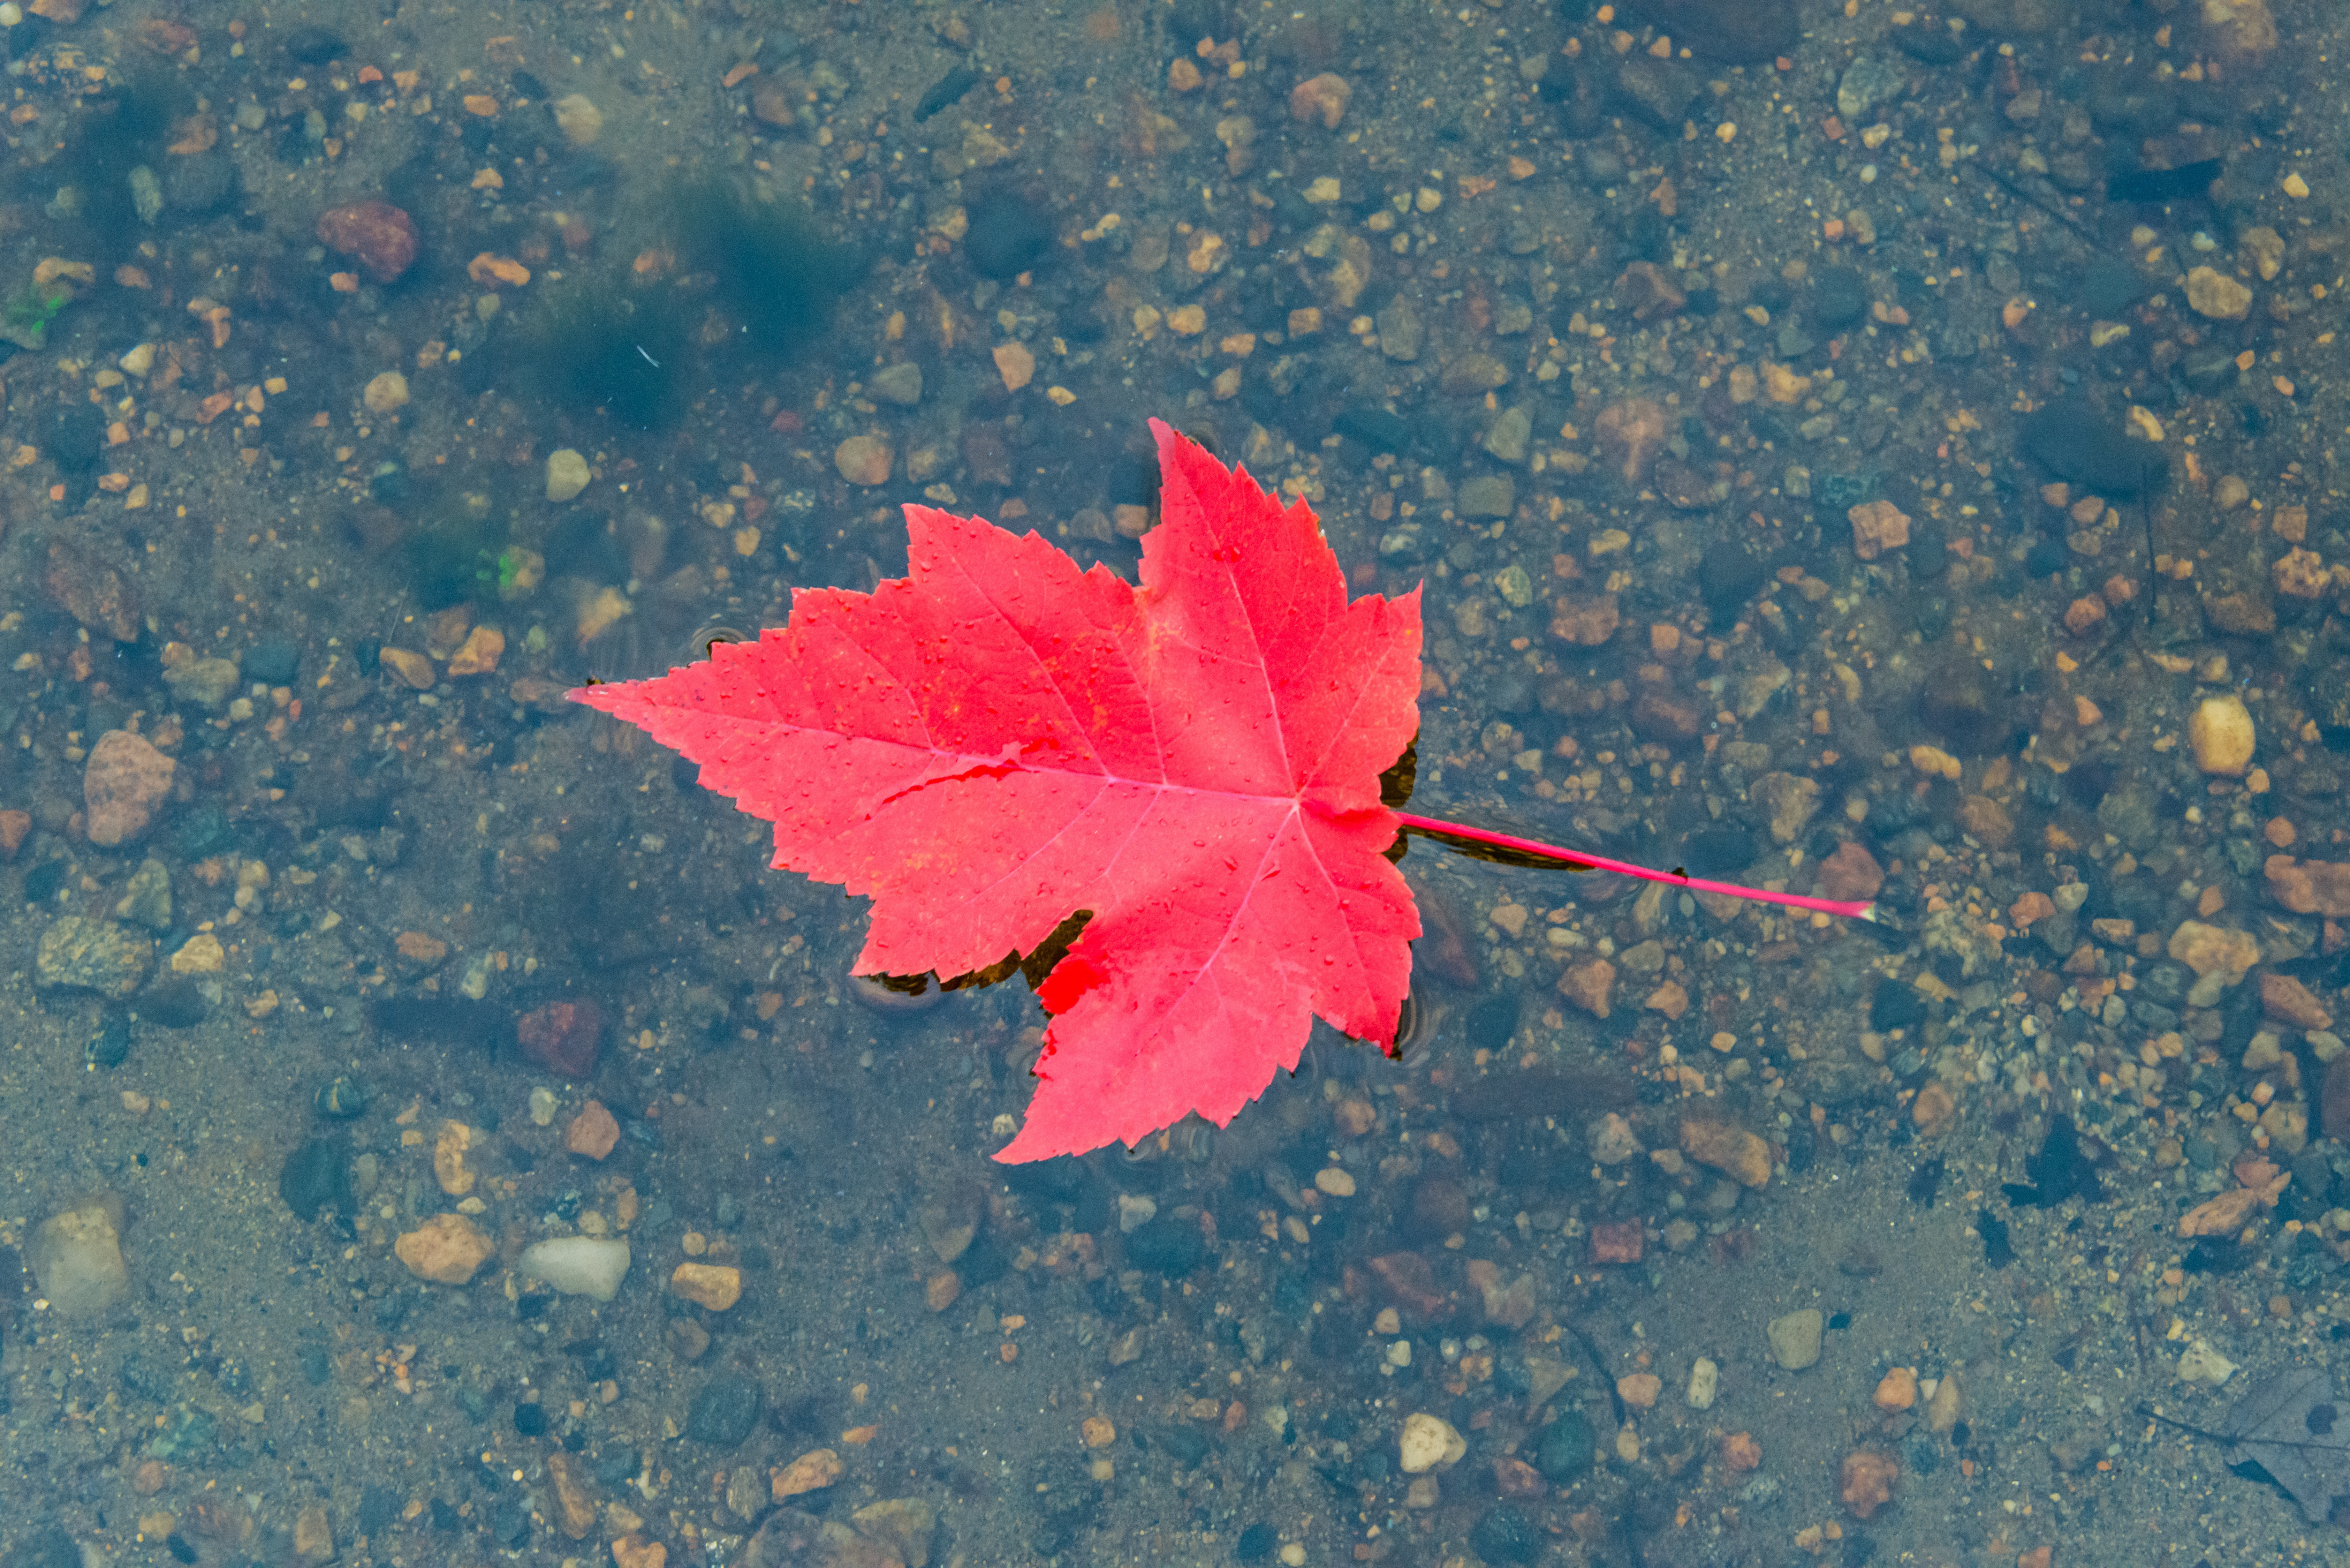 Wallpaper Red autumn leaf in water